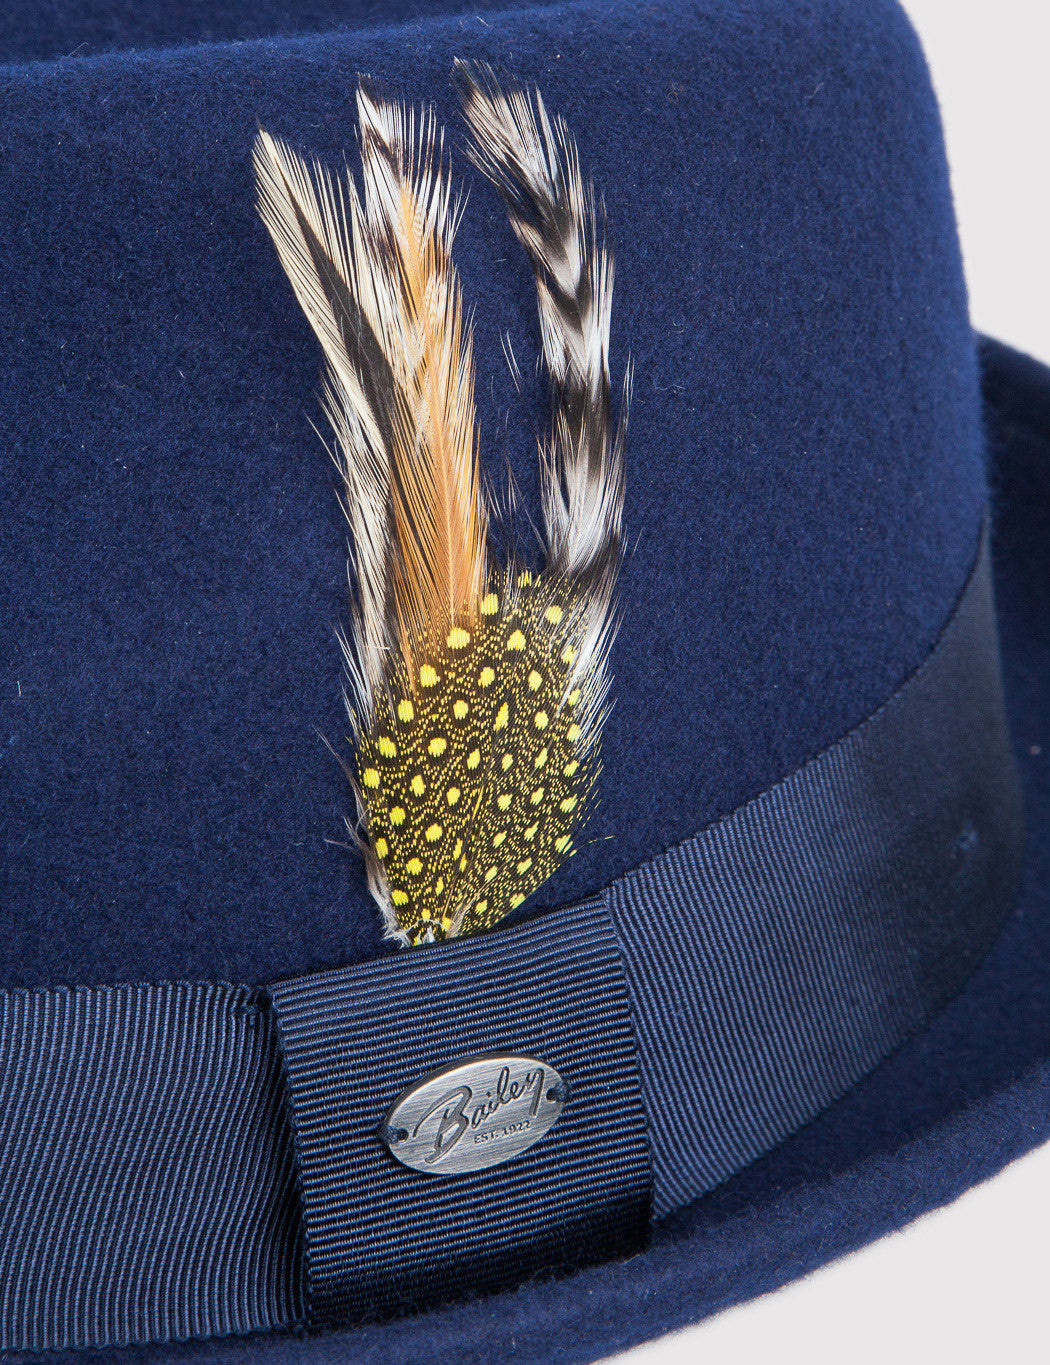 Bailey Cloyd Trilby Hat - Navy Blue